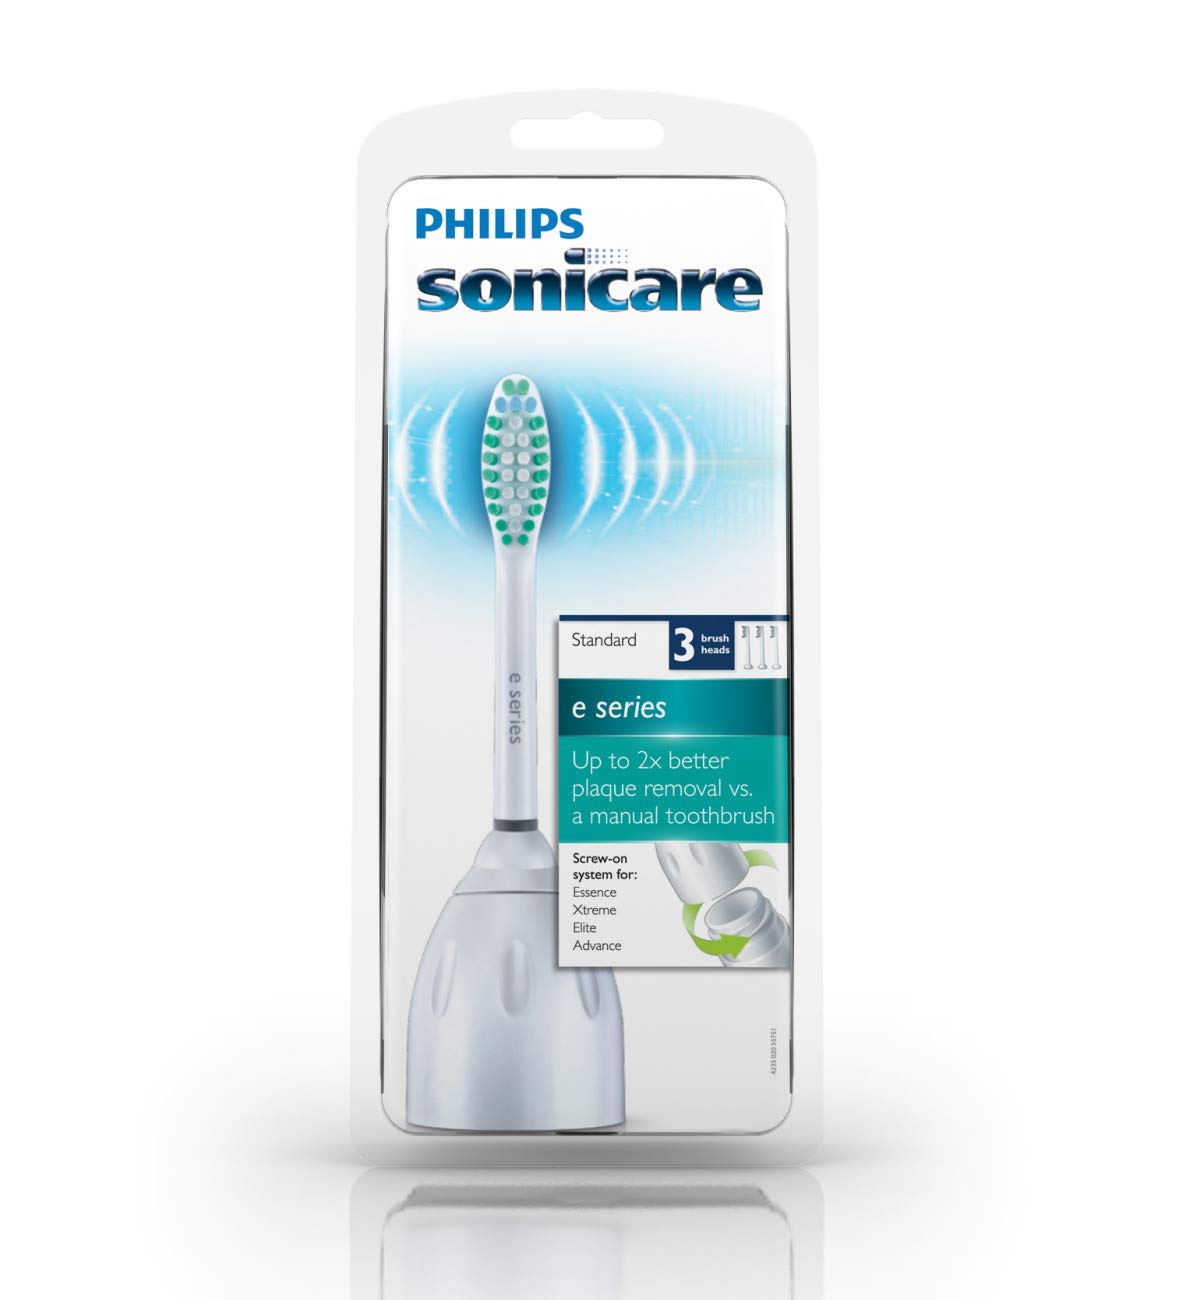 Genuine Philips Sonicare E-Series replacement toothbrush heads, HX7023/30, 3 Count by Philips Sonicare